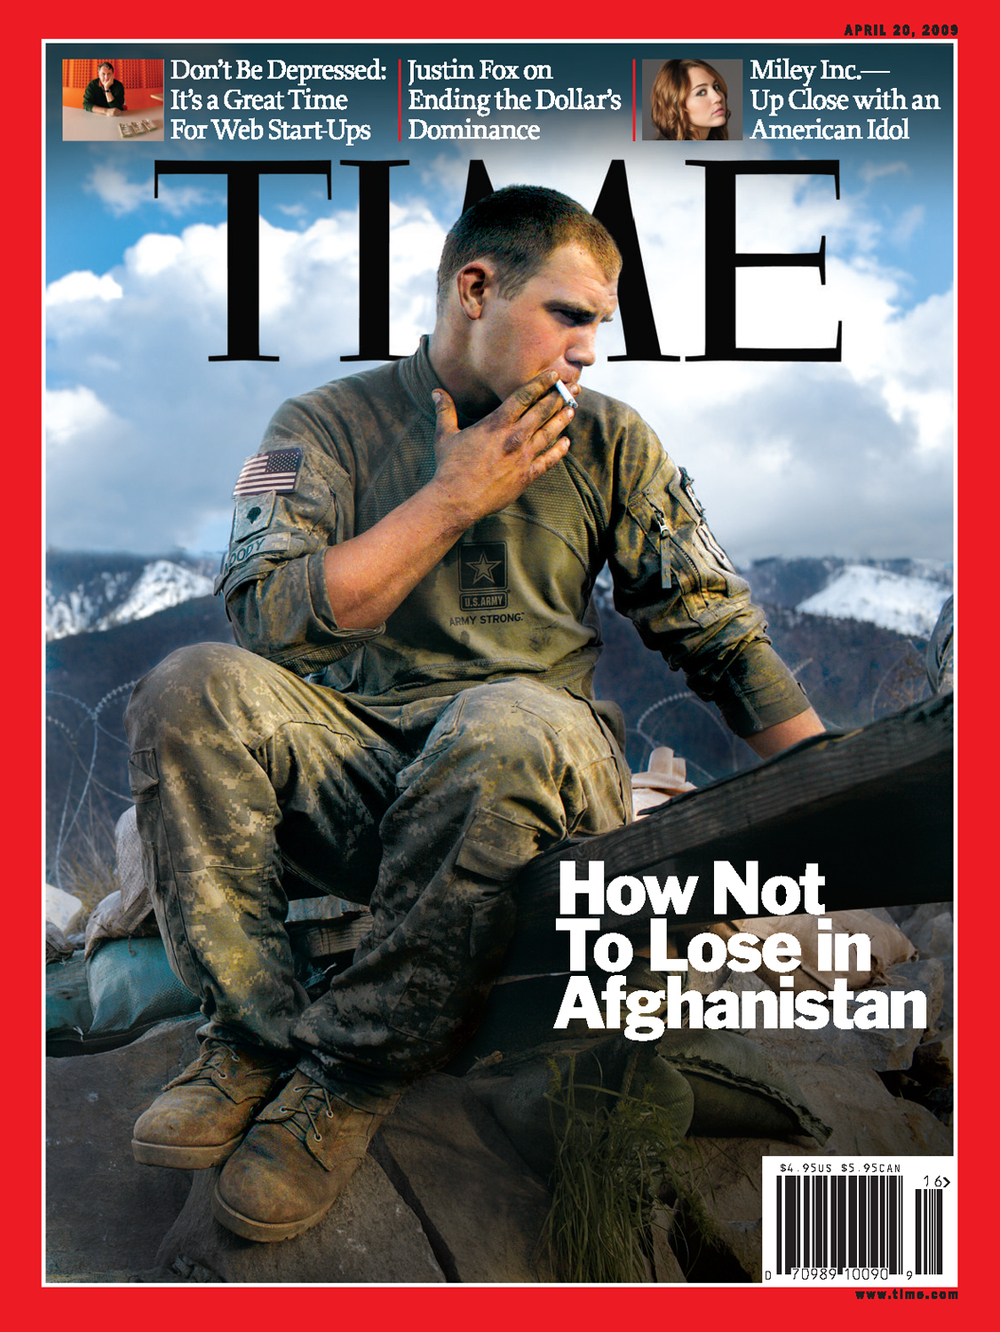 'How Not To Lose in Afghanistan', Time Magazine, April 20, 2009.